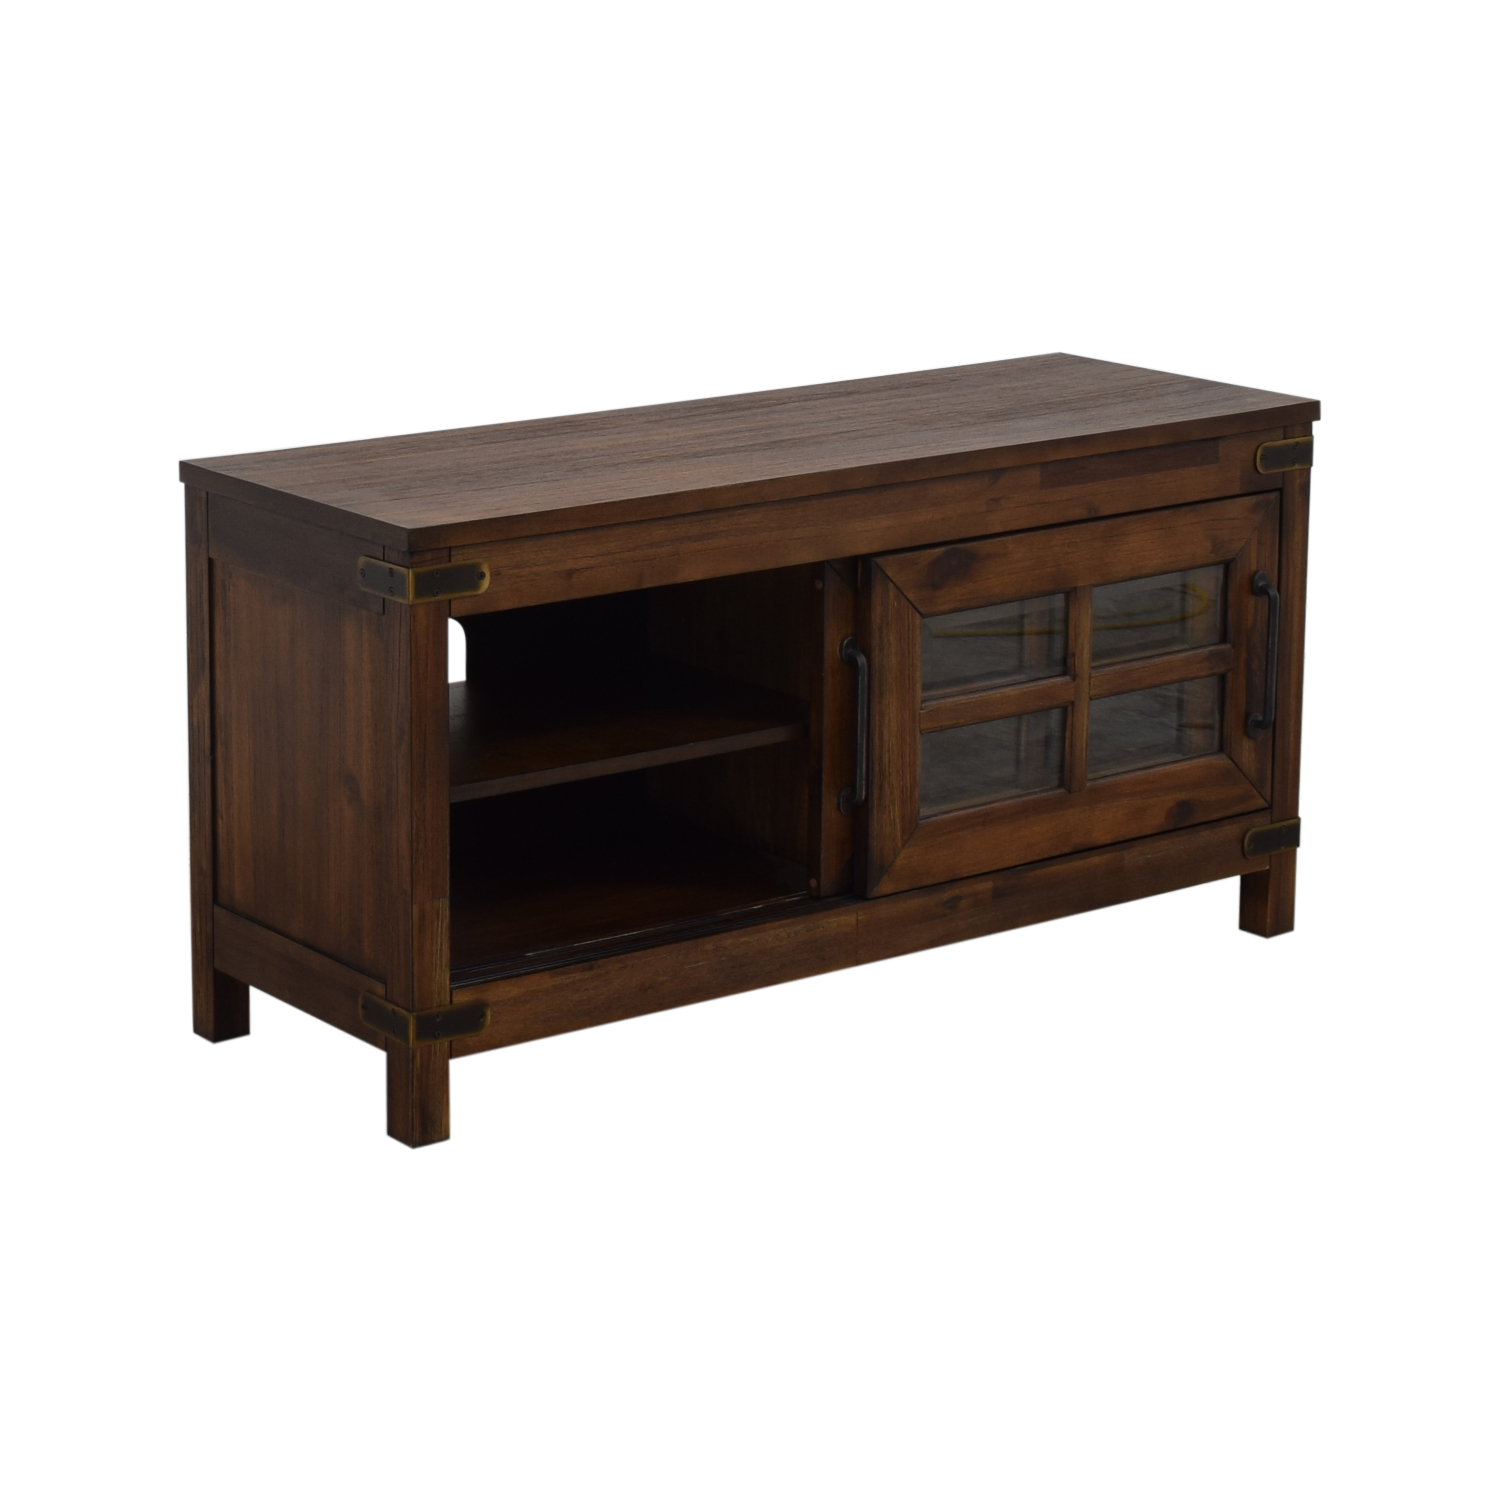 premium selection 9f259 2c7d4 82% OFF - Bob's Discount Furniture Bob's Discount Furniture Boulder  Entertainment Console / Storage